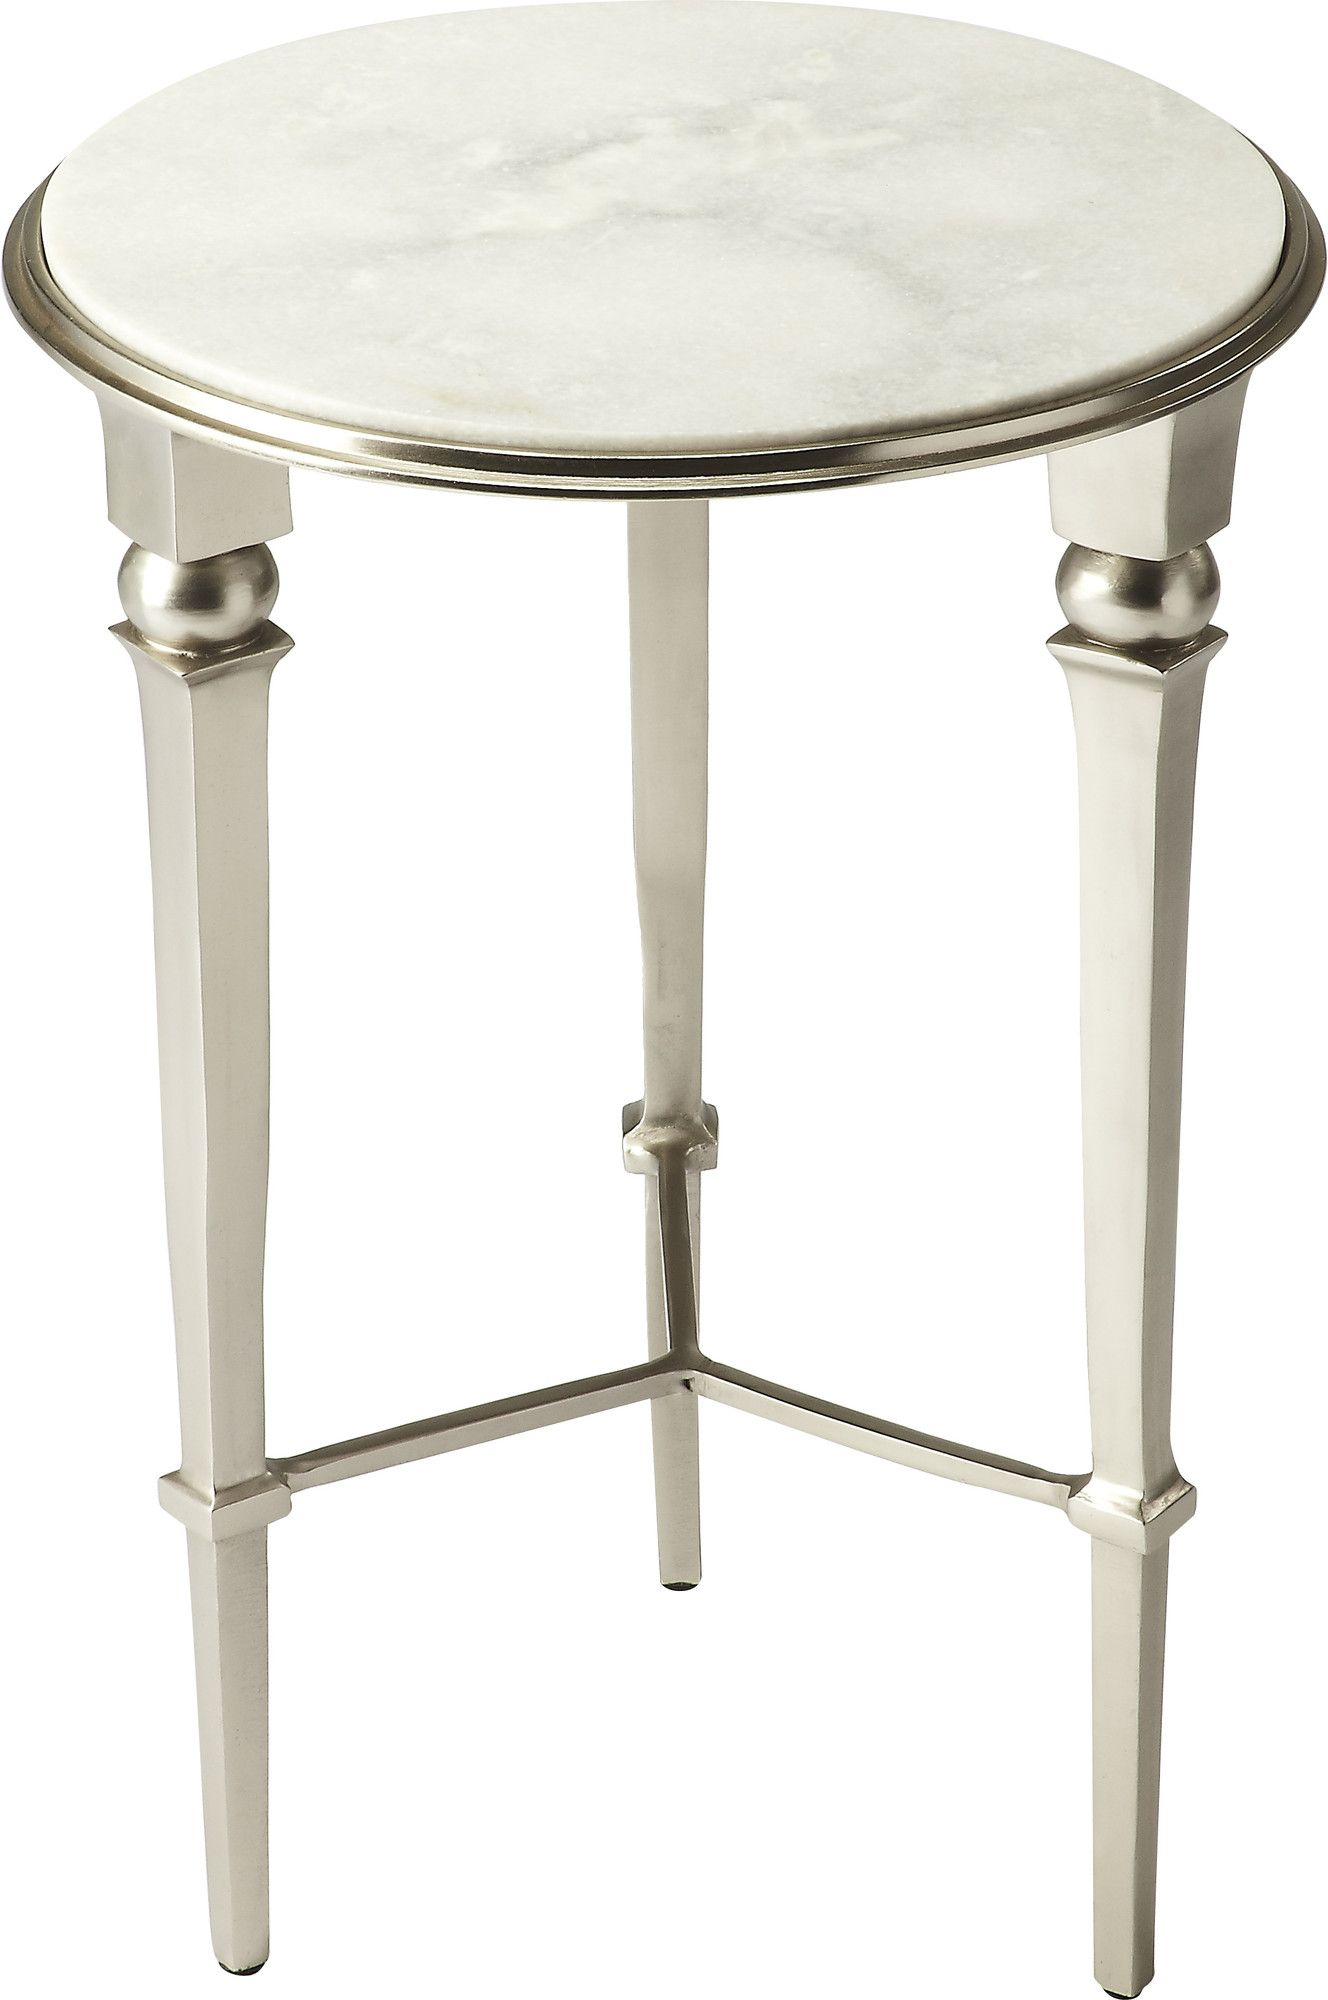 Darrieux end table